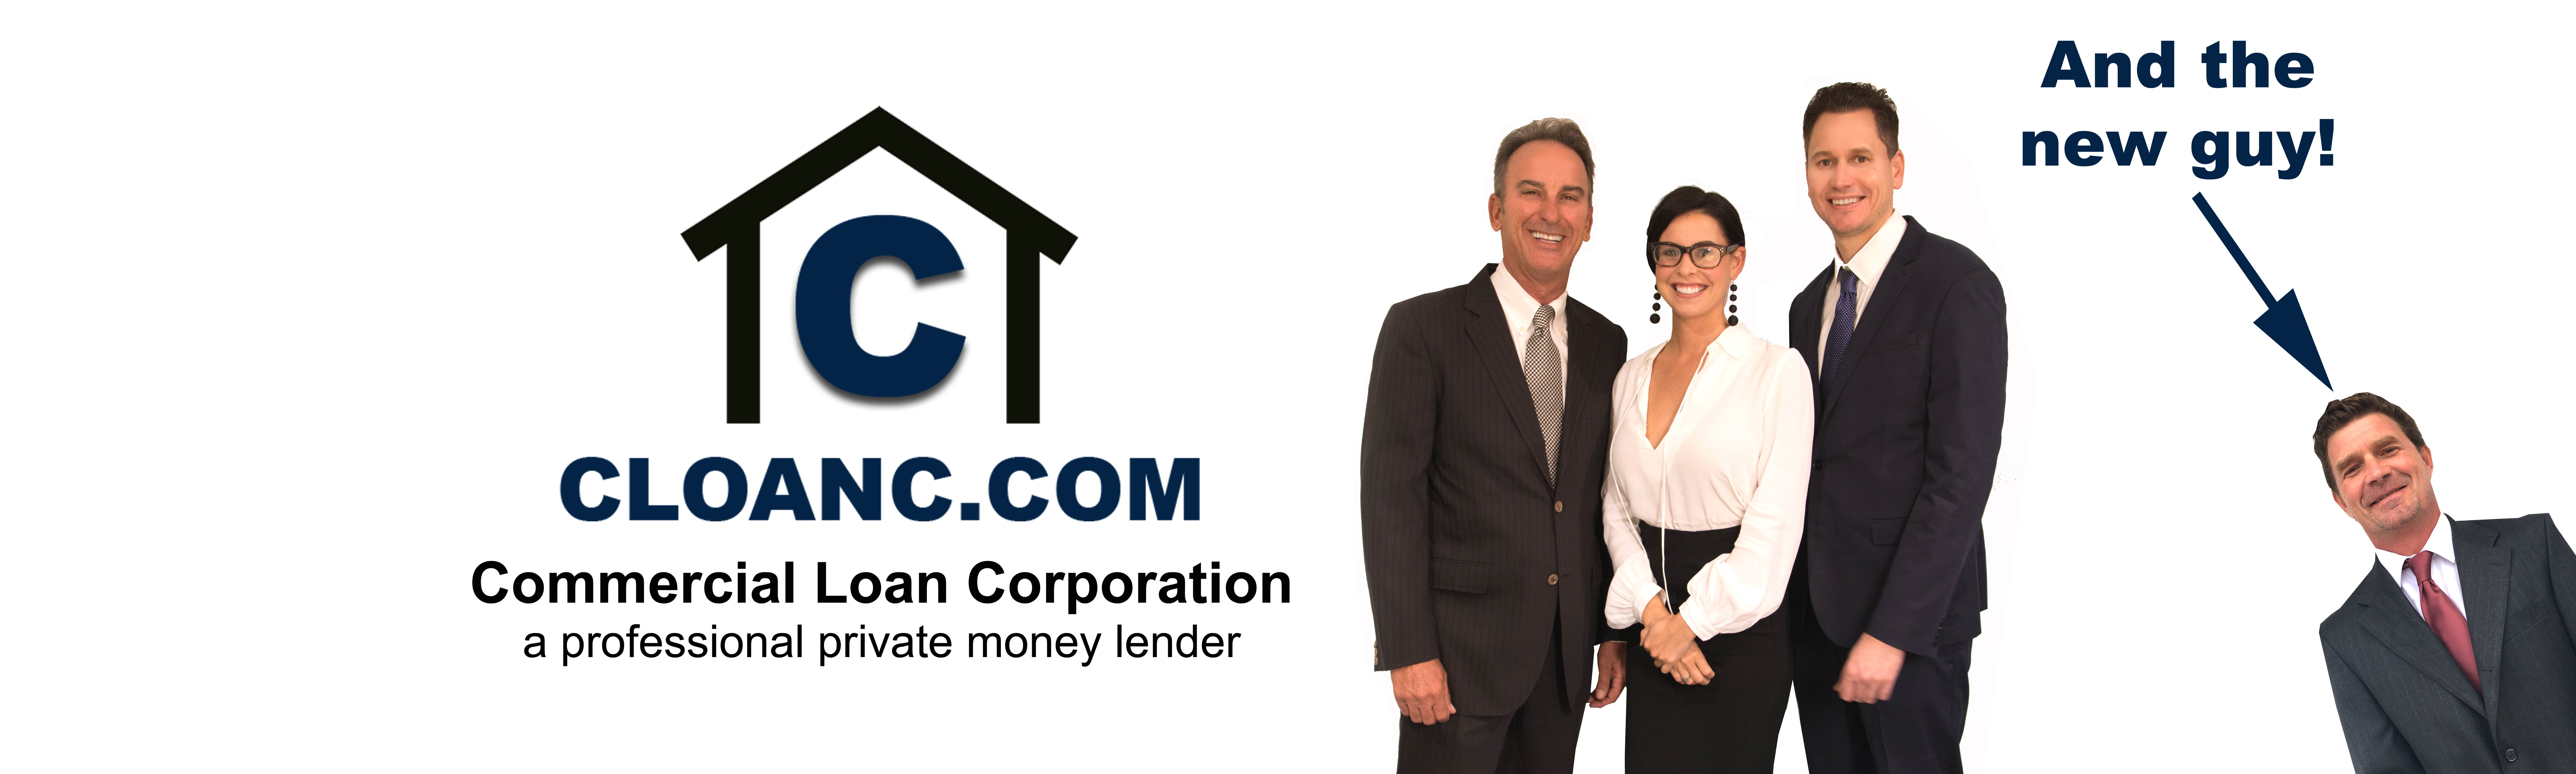 Commercial Loan Corporation, Newport Beach, CA